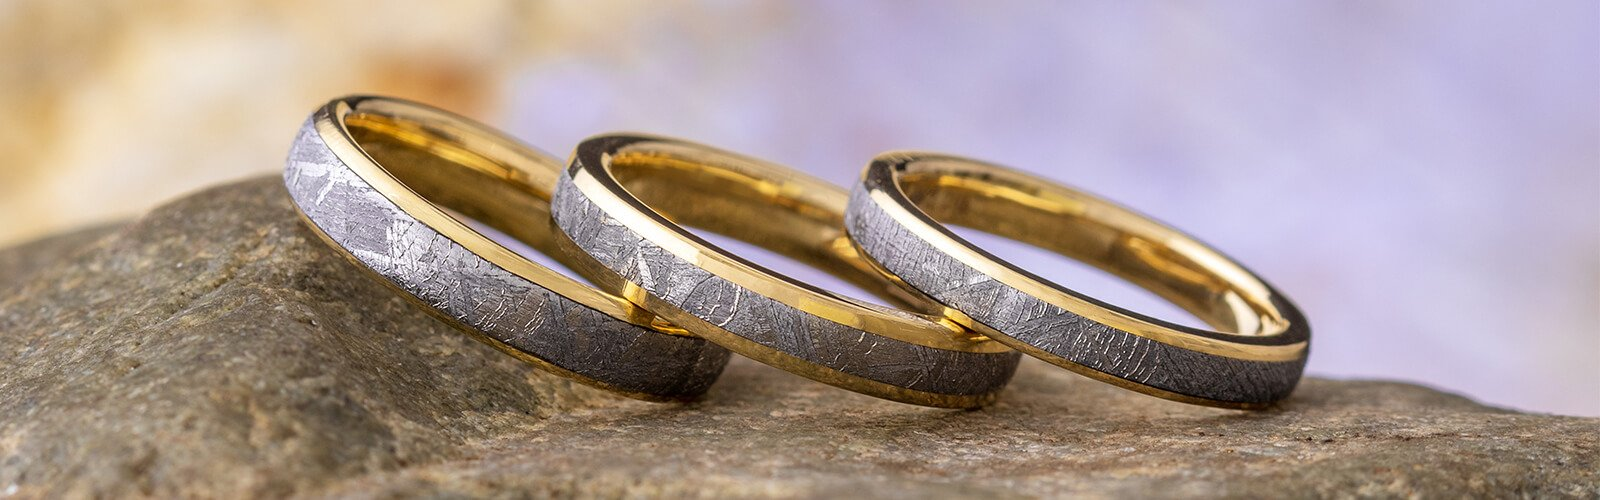 Some Excellent Tips for Buying a Wedding Band